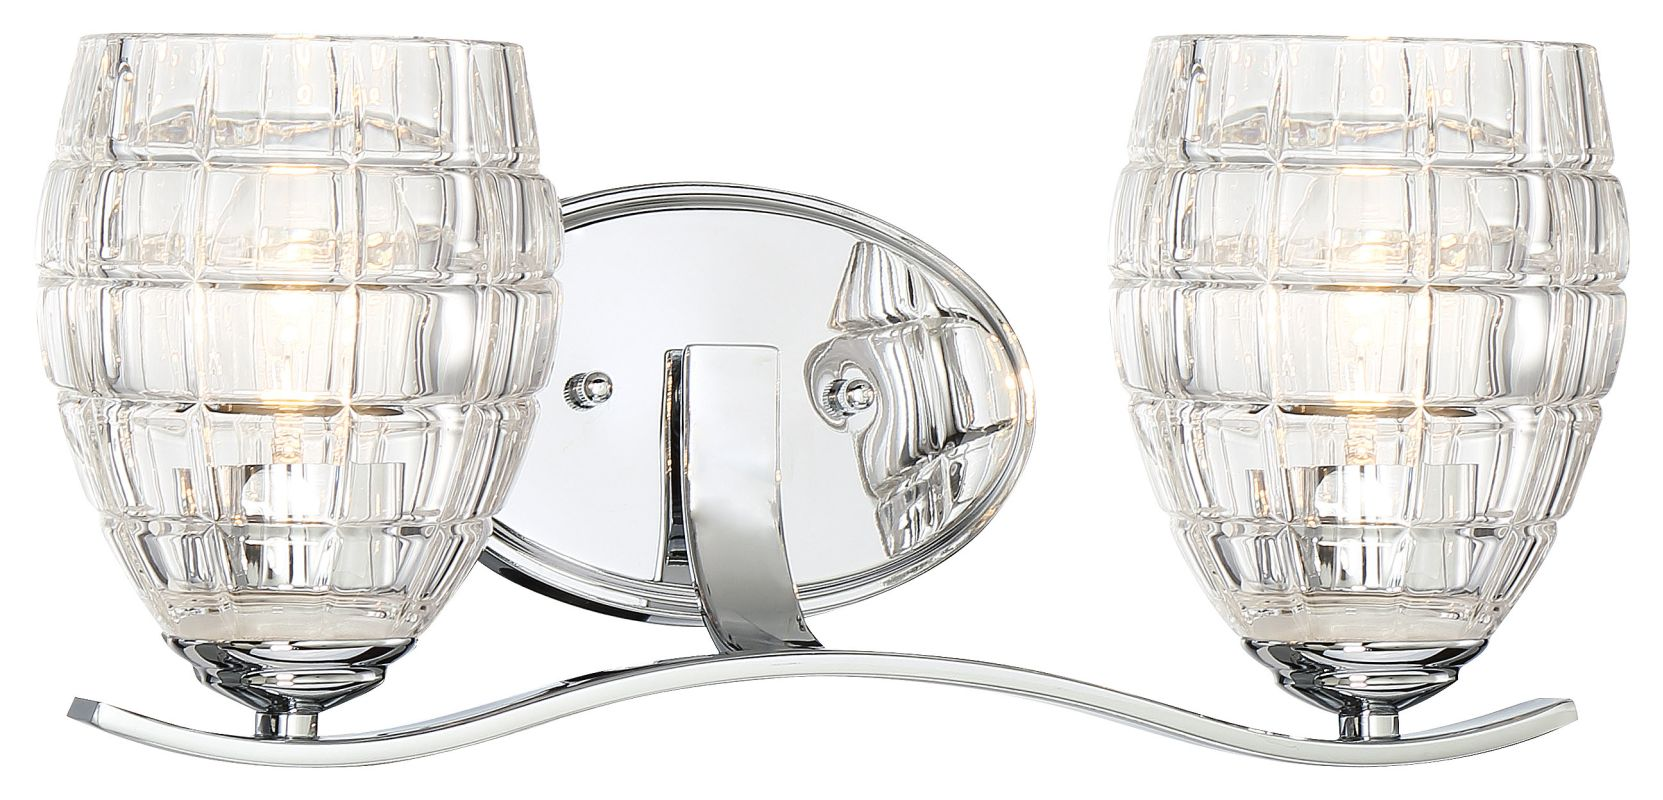 Minka Lavery 3422-77 2 Light Vanity Light from the Austine Collection